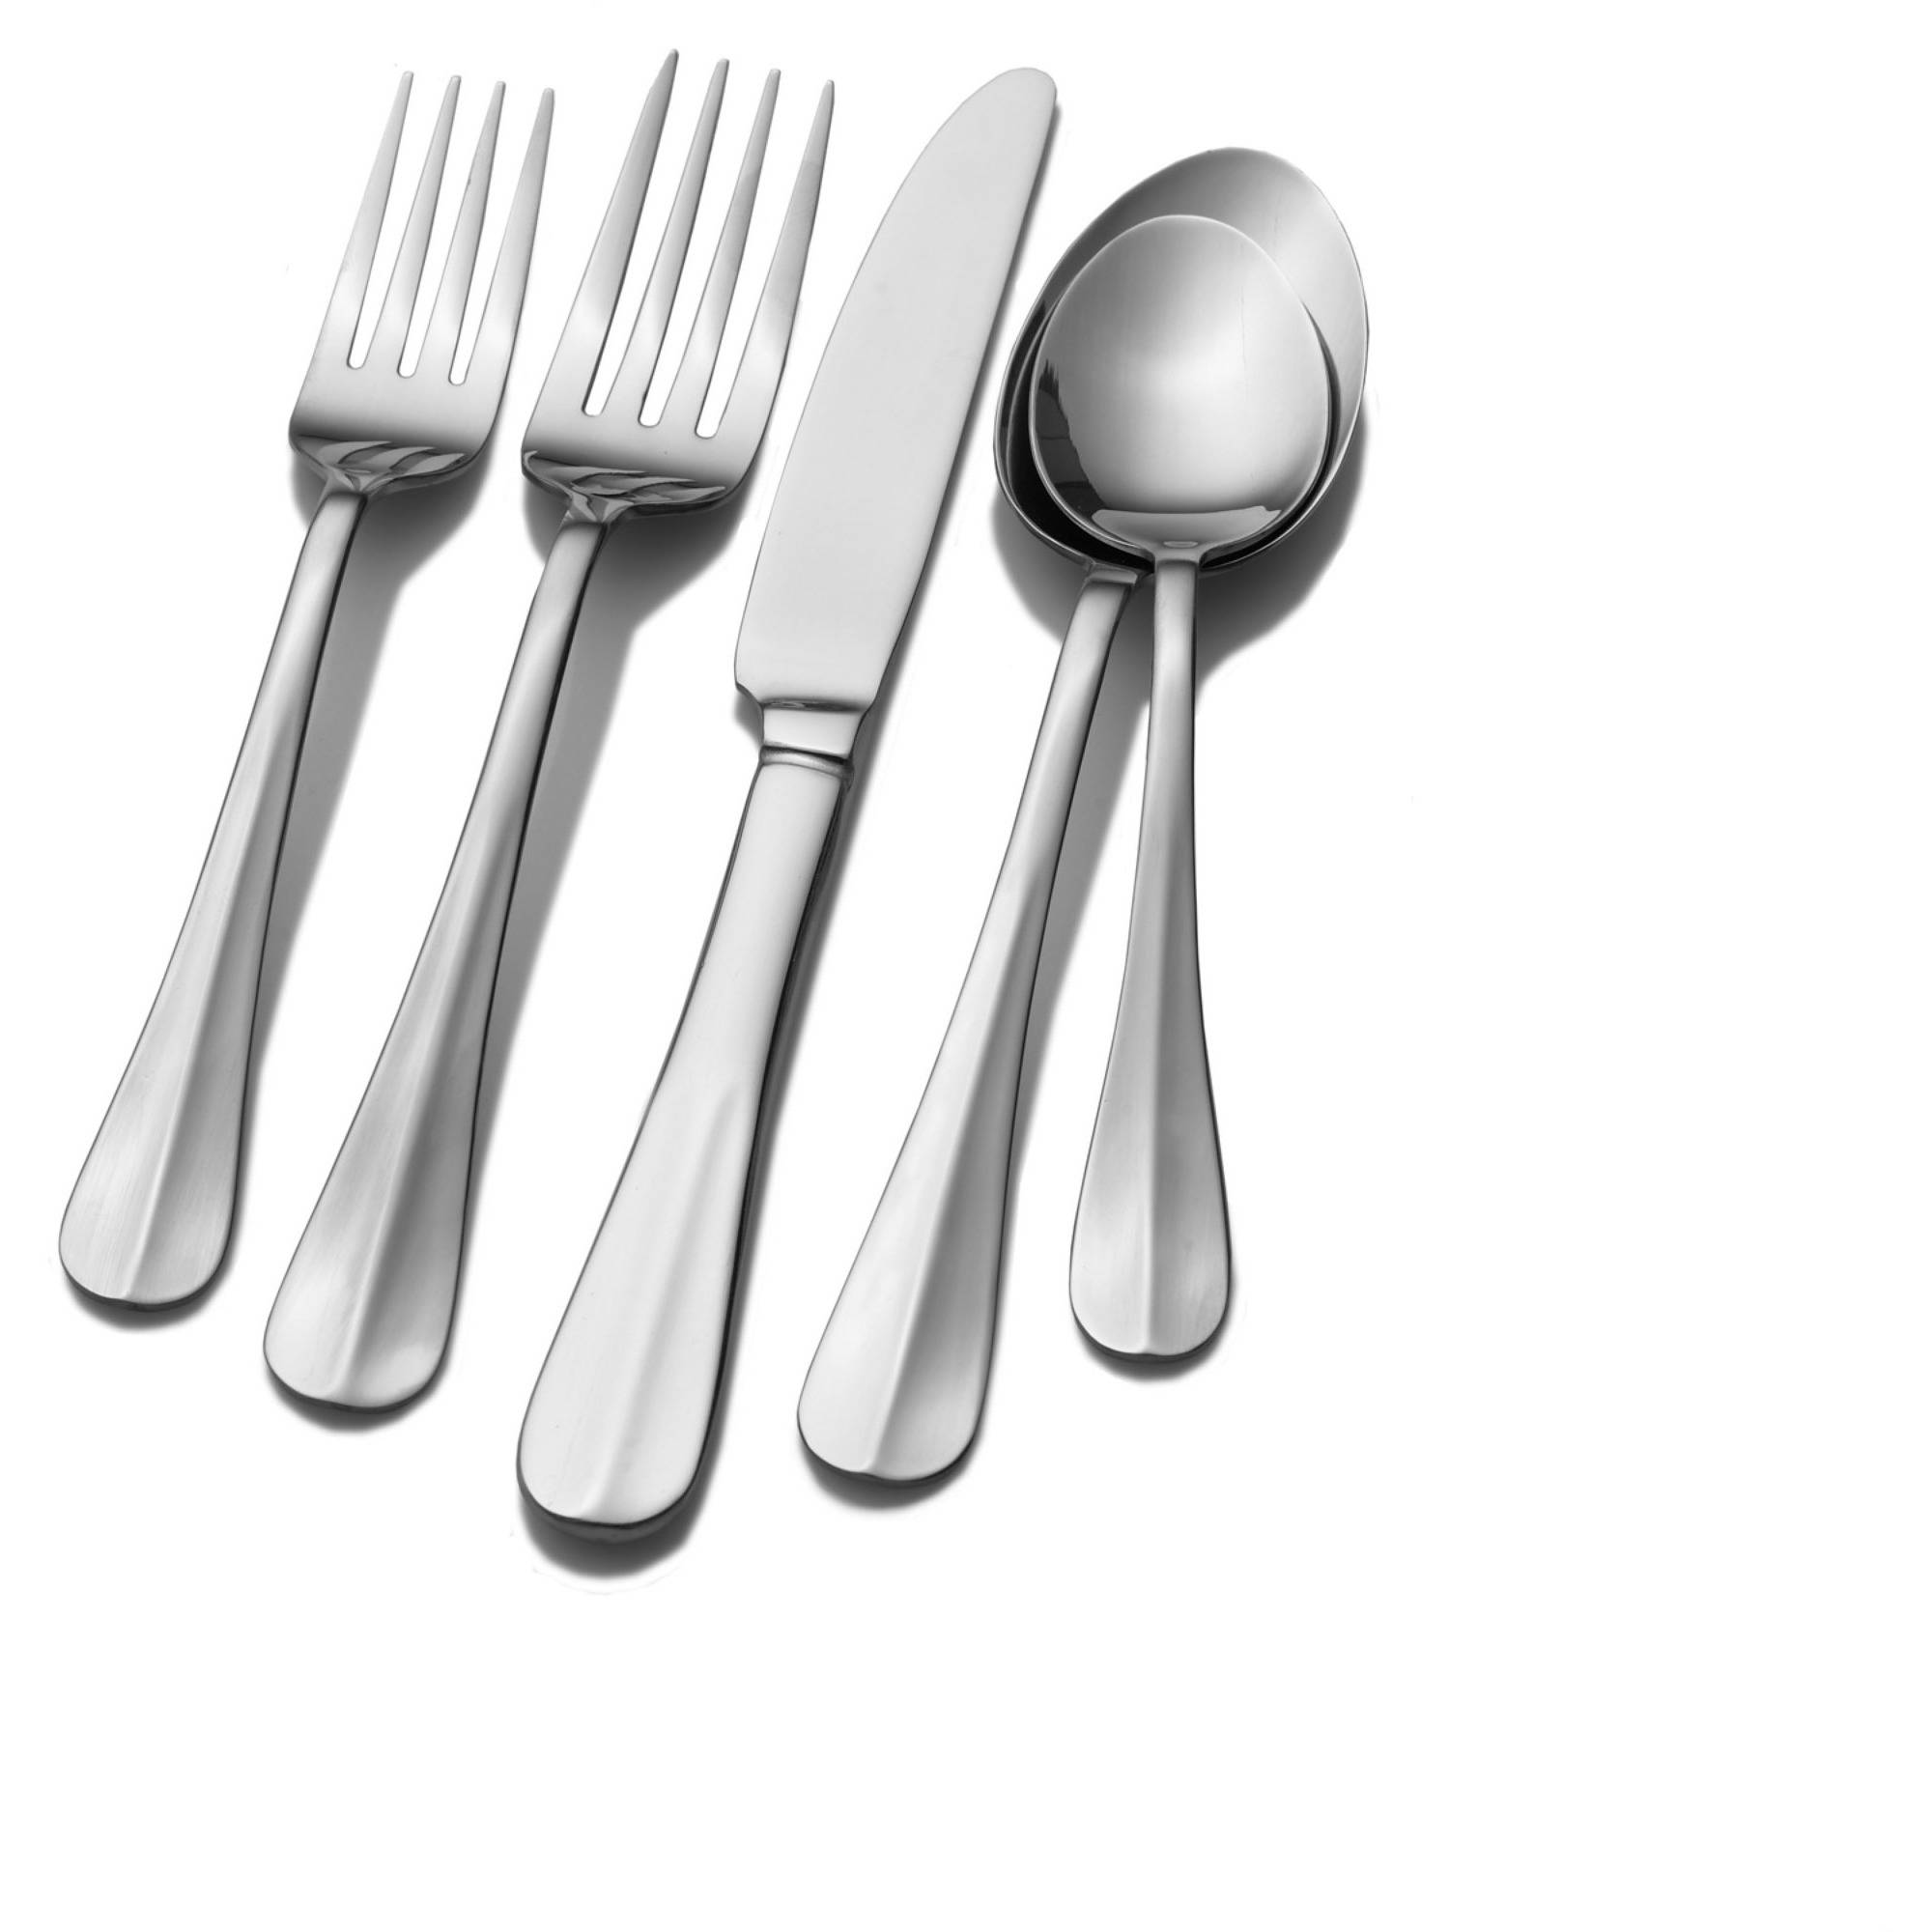 International Silver Simplicity 18-Piece Stainless Steel Flatware Set